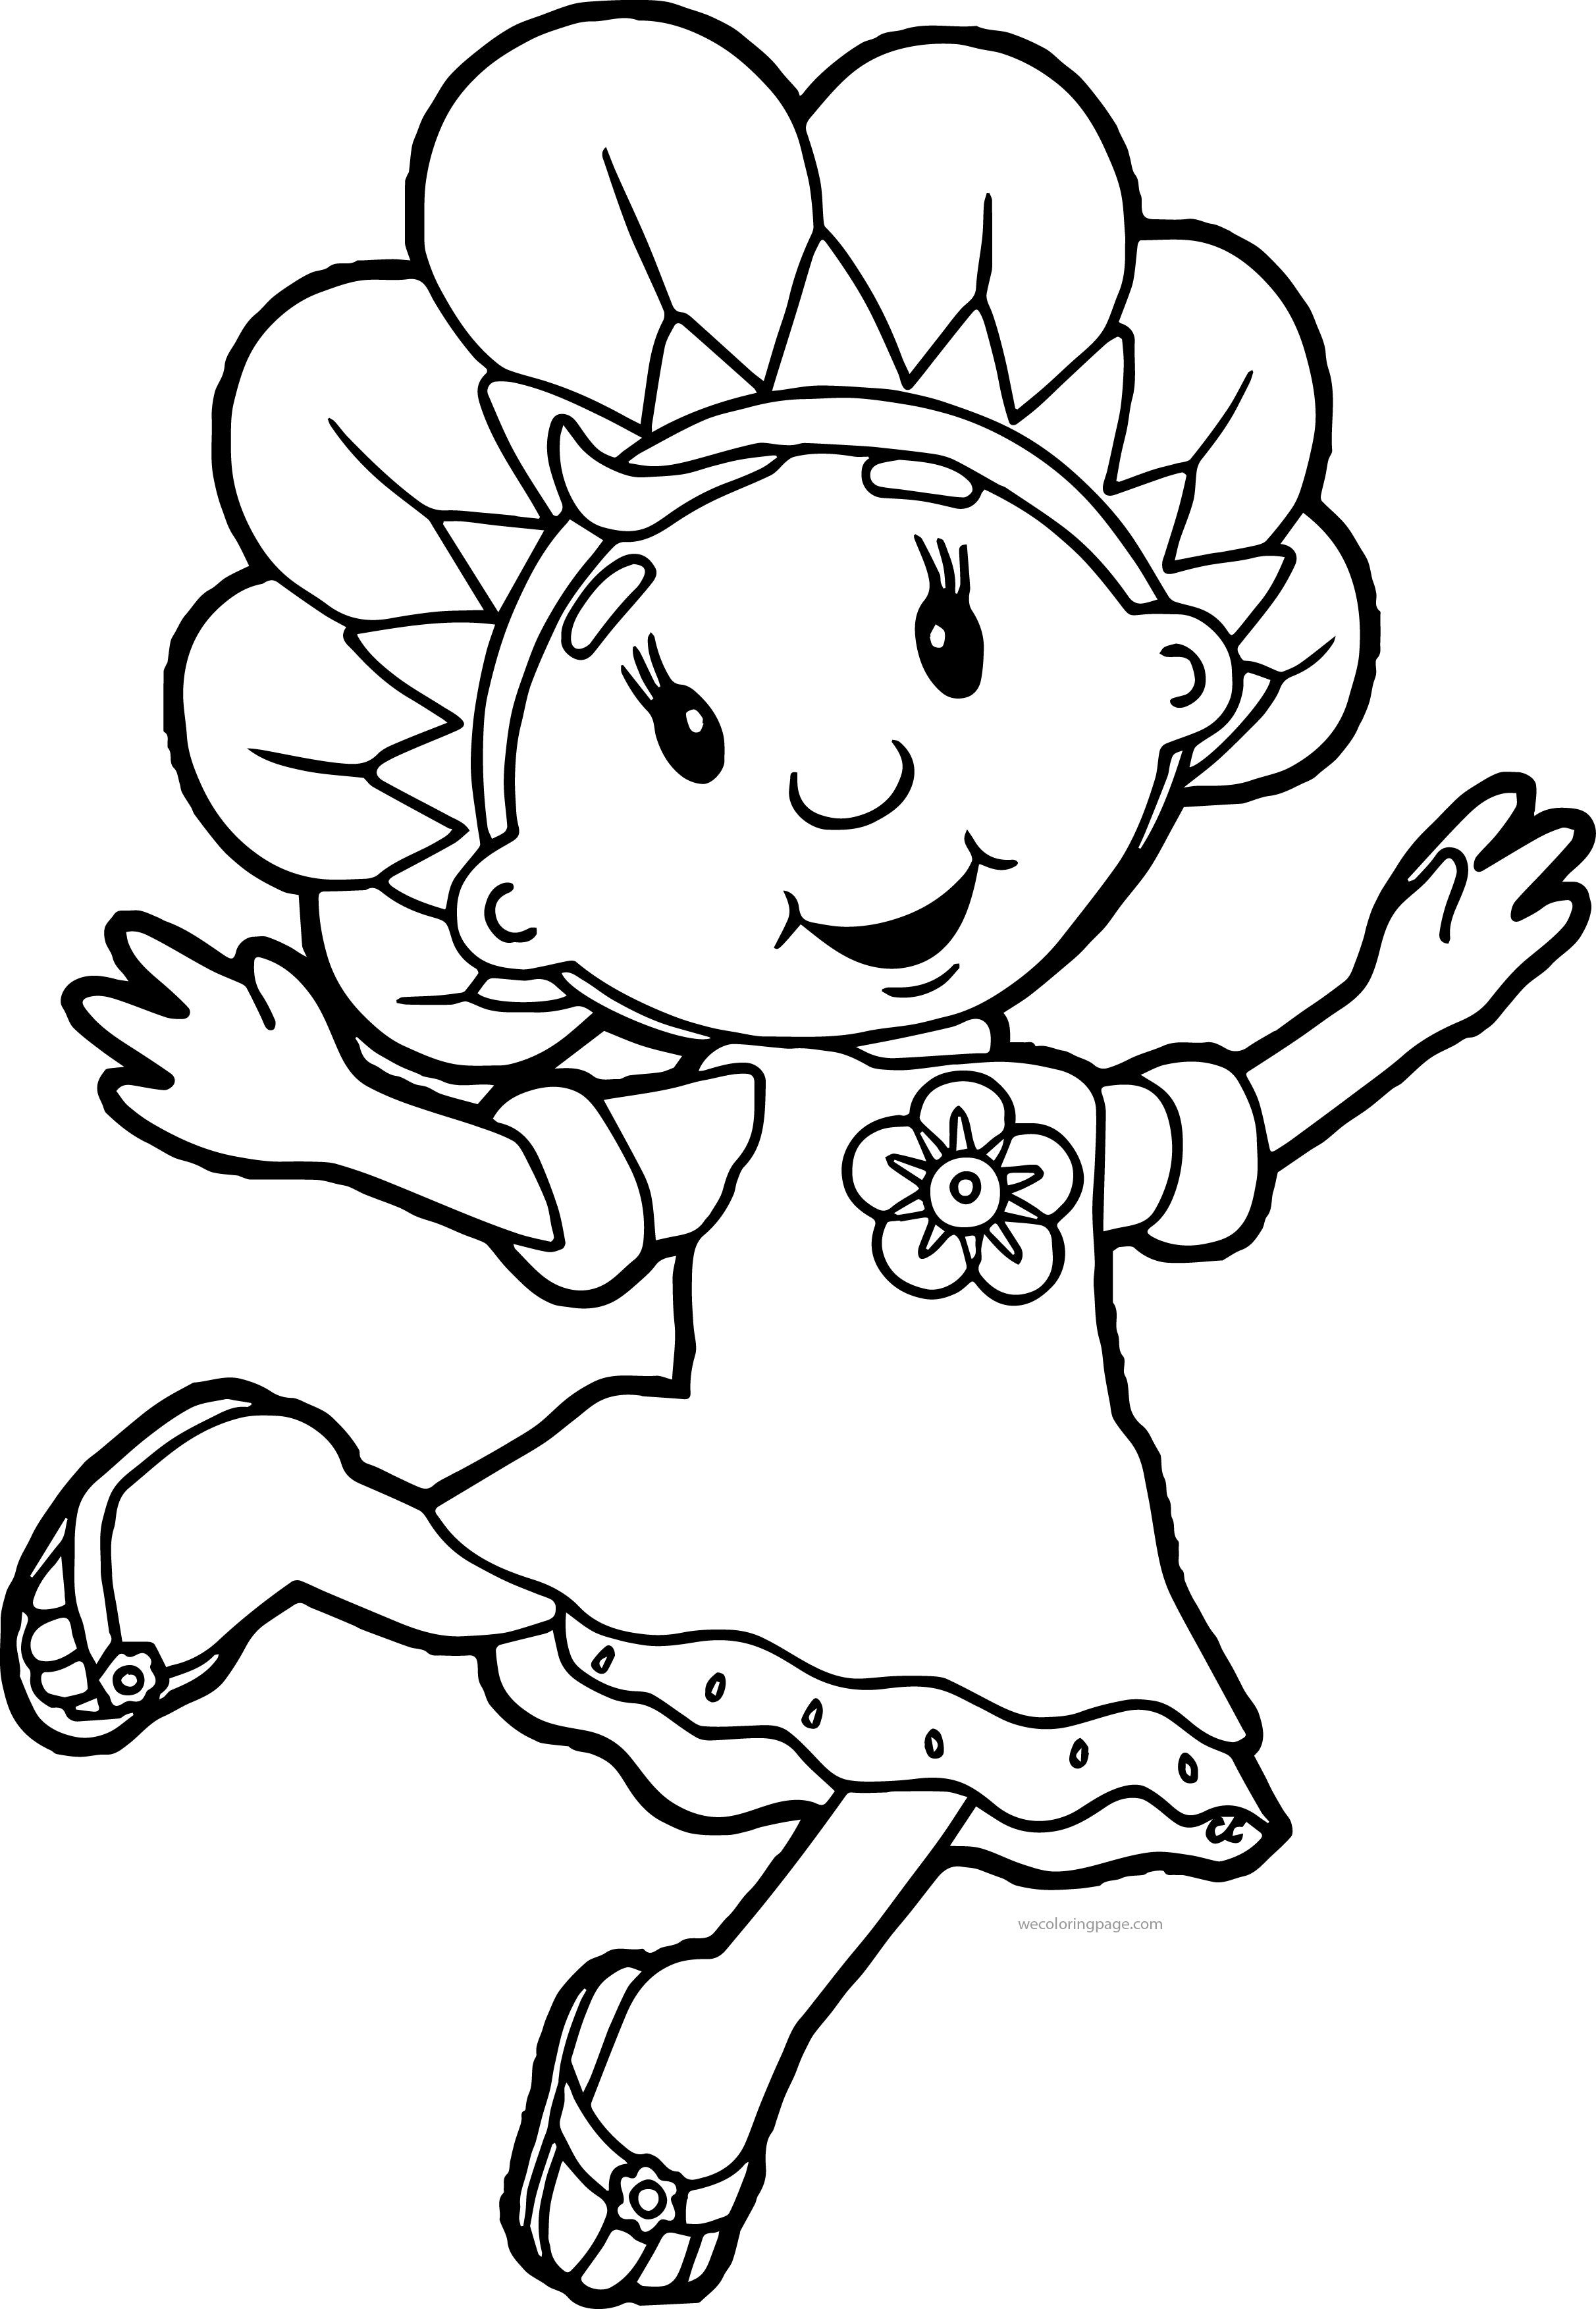 Fifi and the Flowertots Coloring Pages | Time toooo Relax | Pinterest